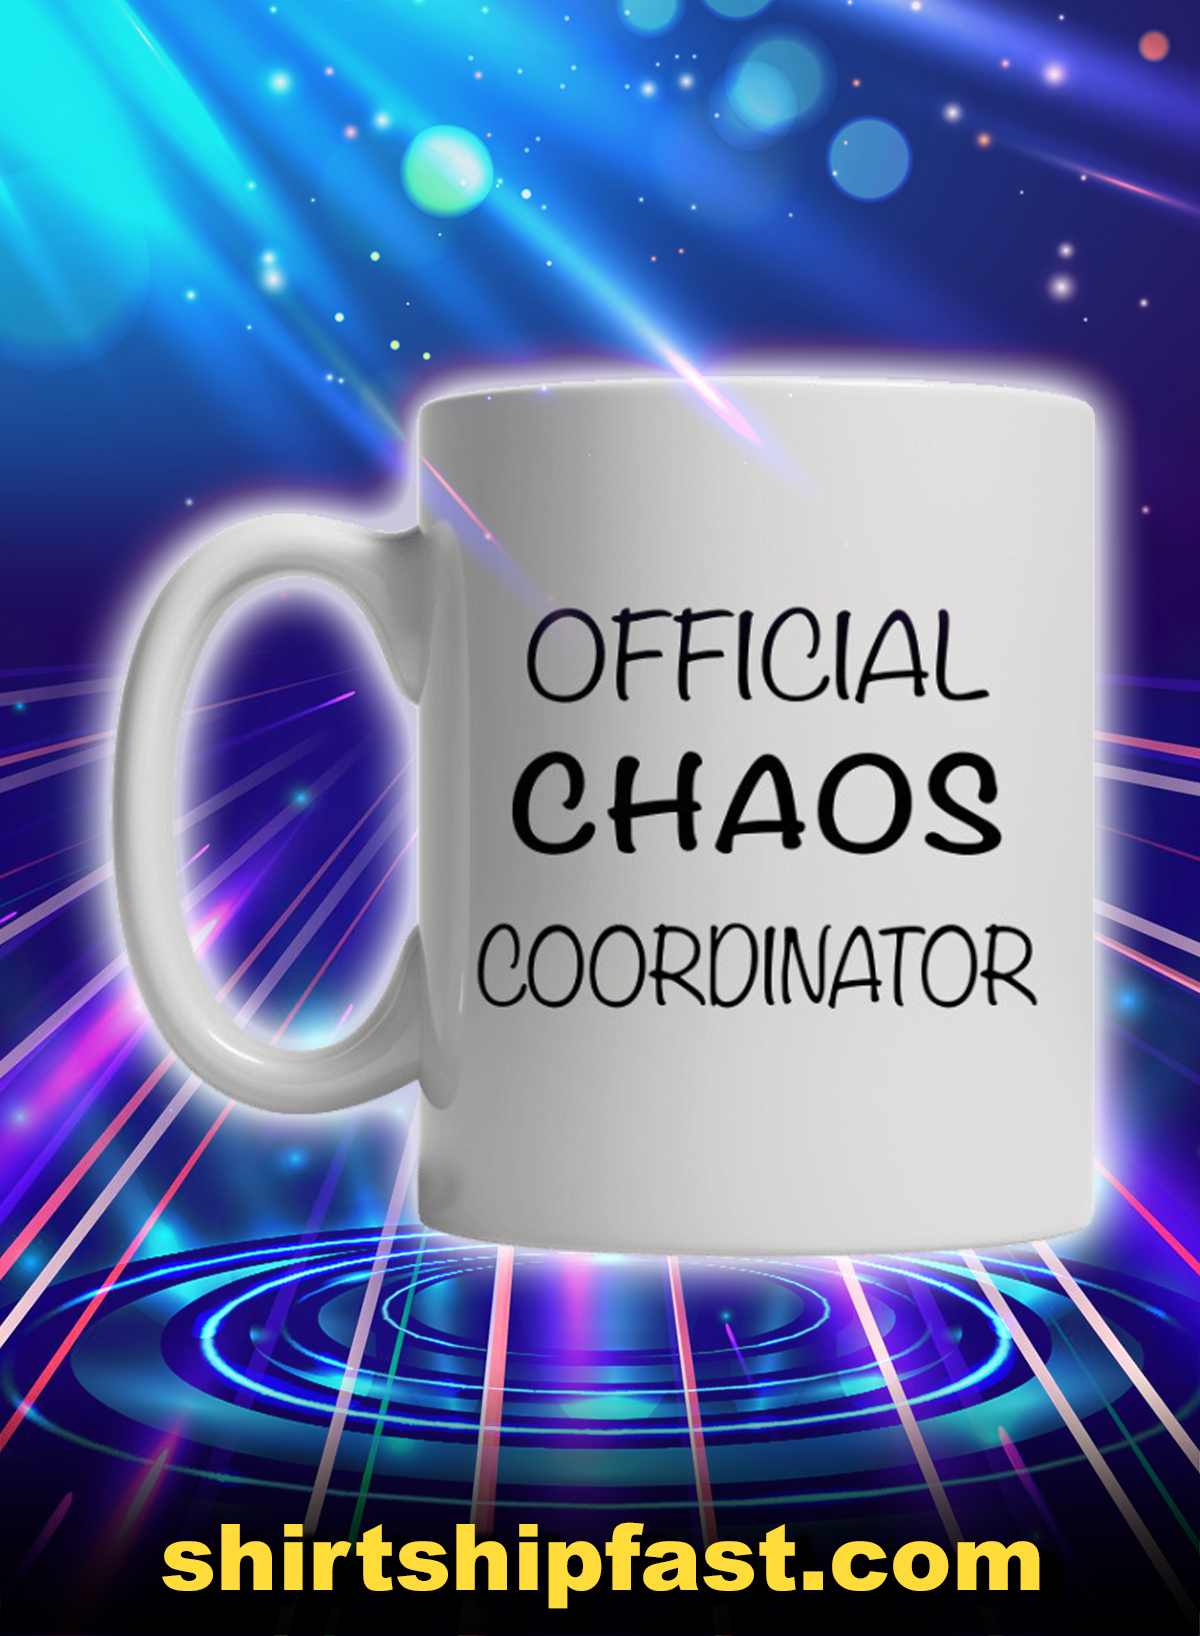 Official chaos coordinator mug - Picture 1